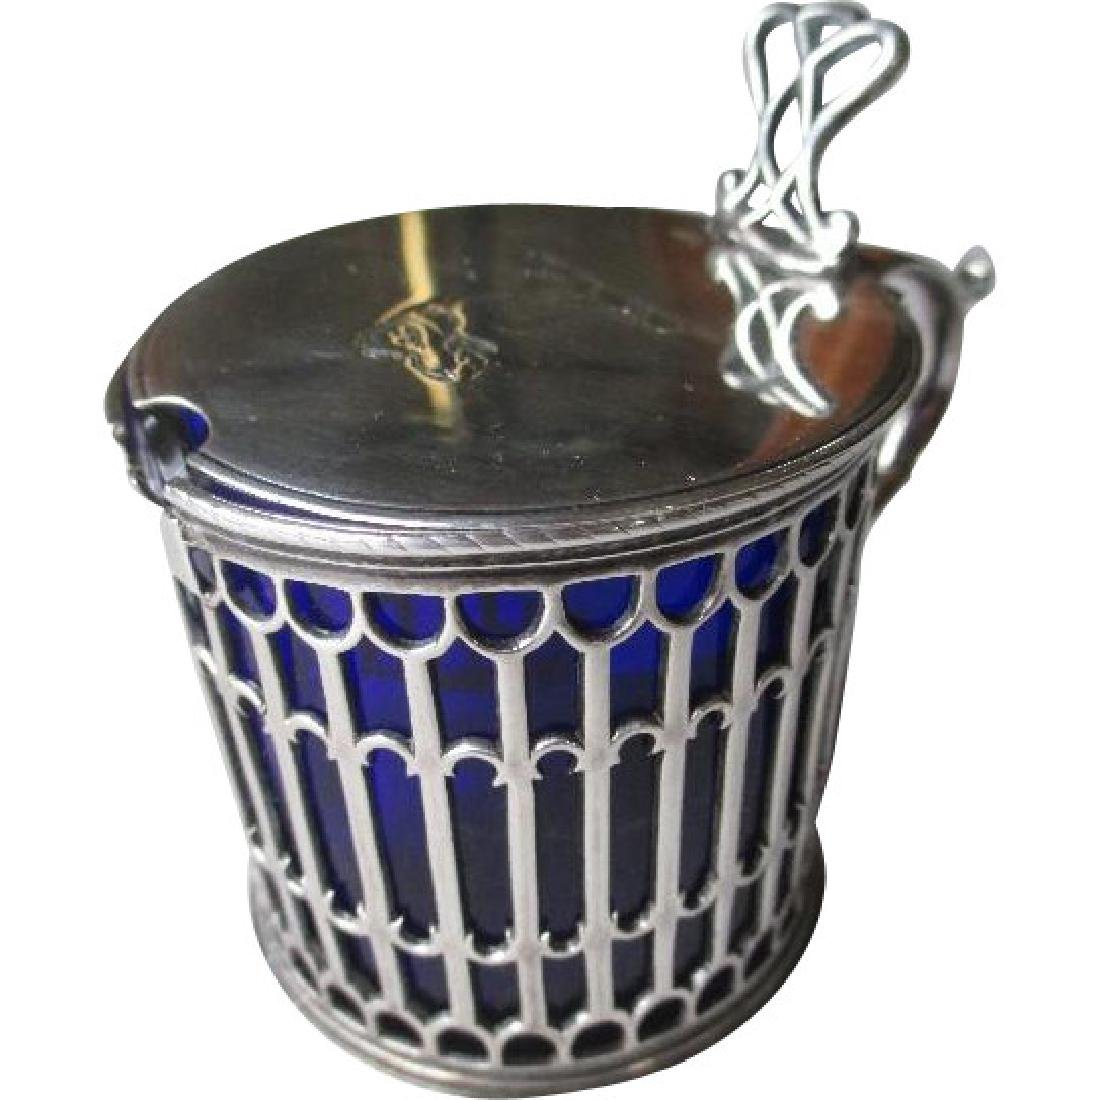 1771 English Sterling Silver Mustard Pot with Cobalt